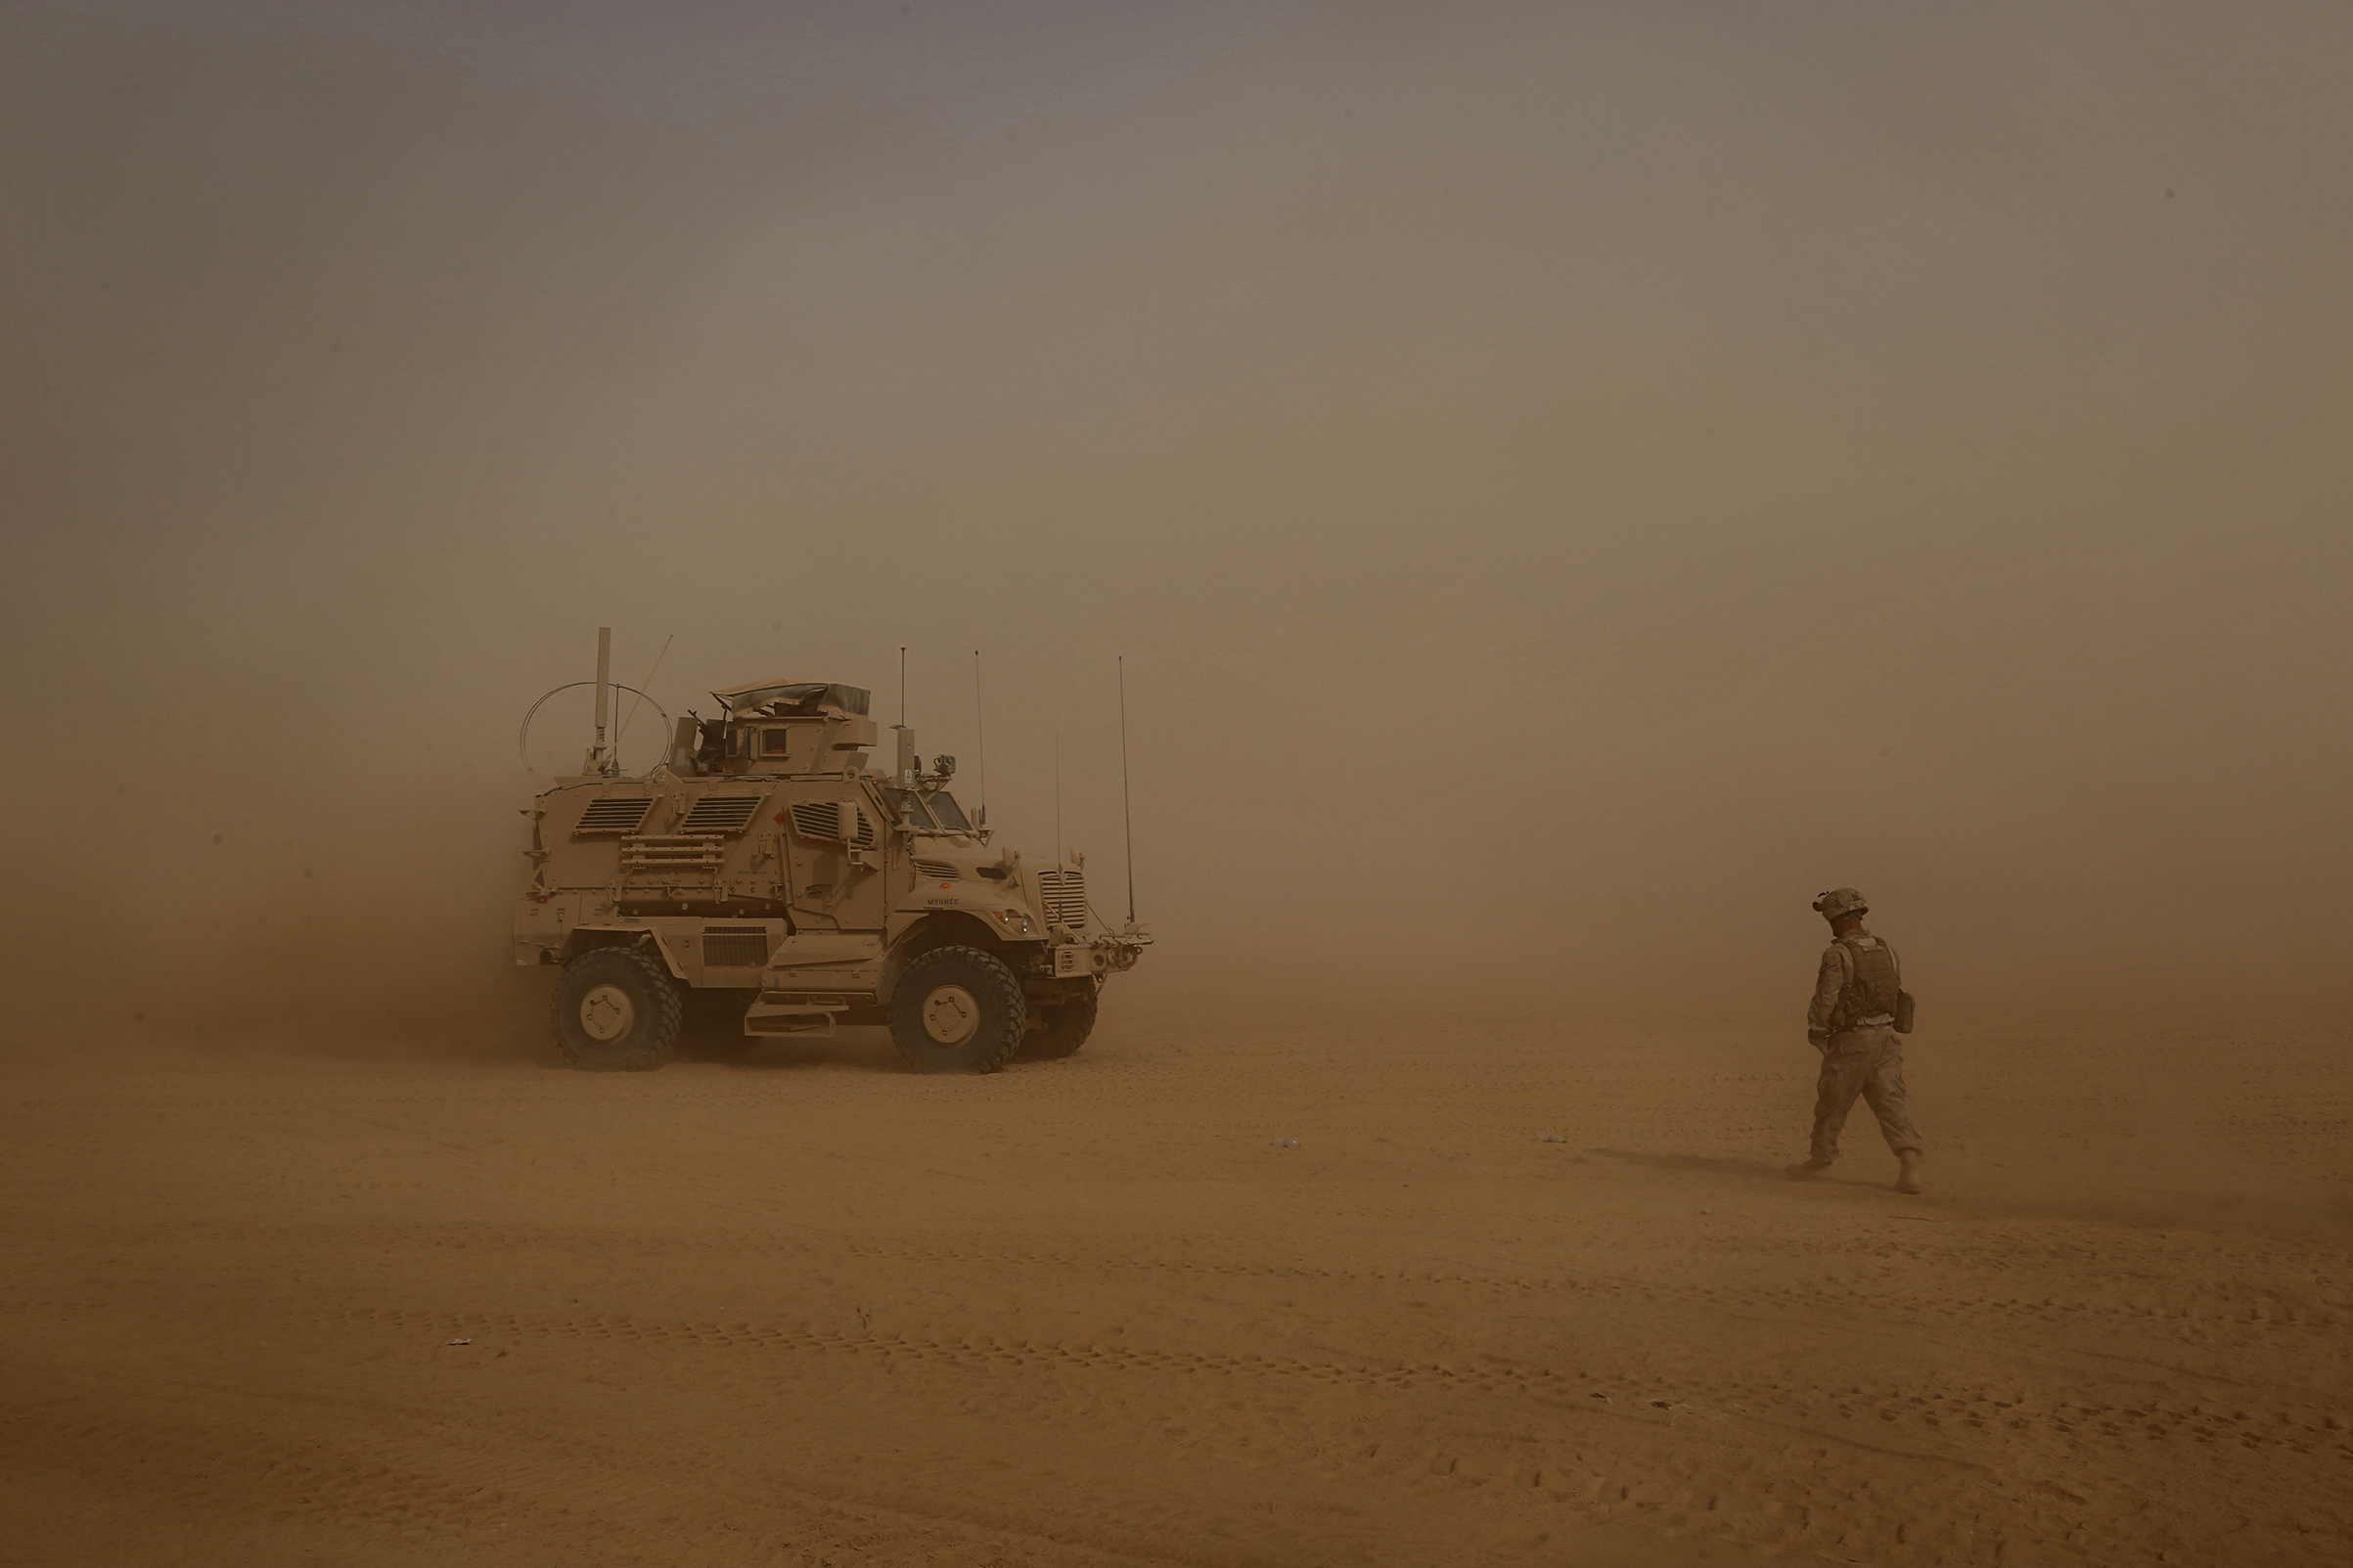 U.S. Marines prepare to build a military outpost in the fight against ISIS during a sandstorm in western Anbar, Iraq, on Nov. 6, 2017.